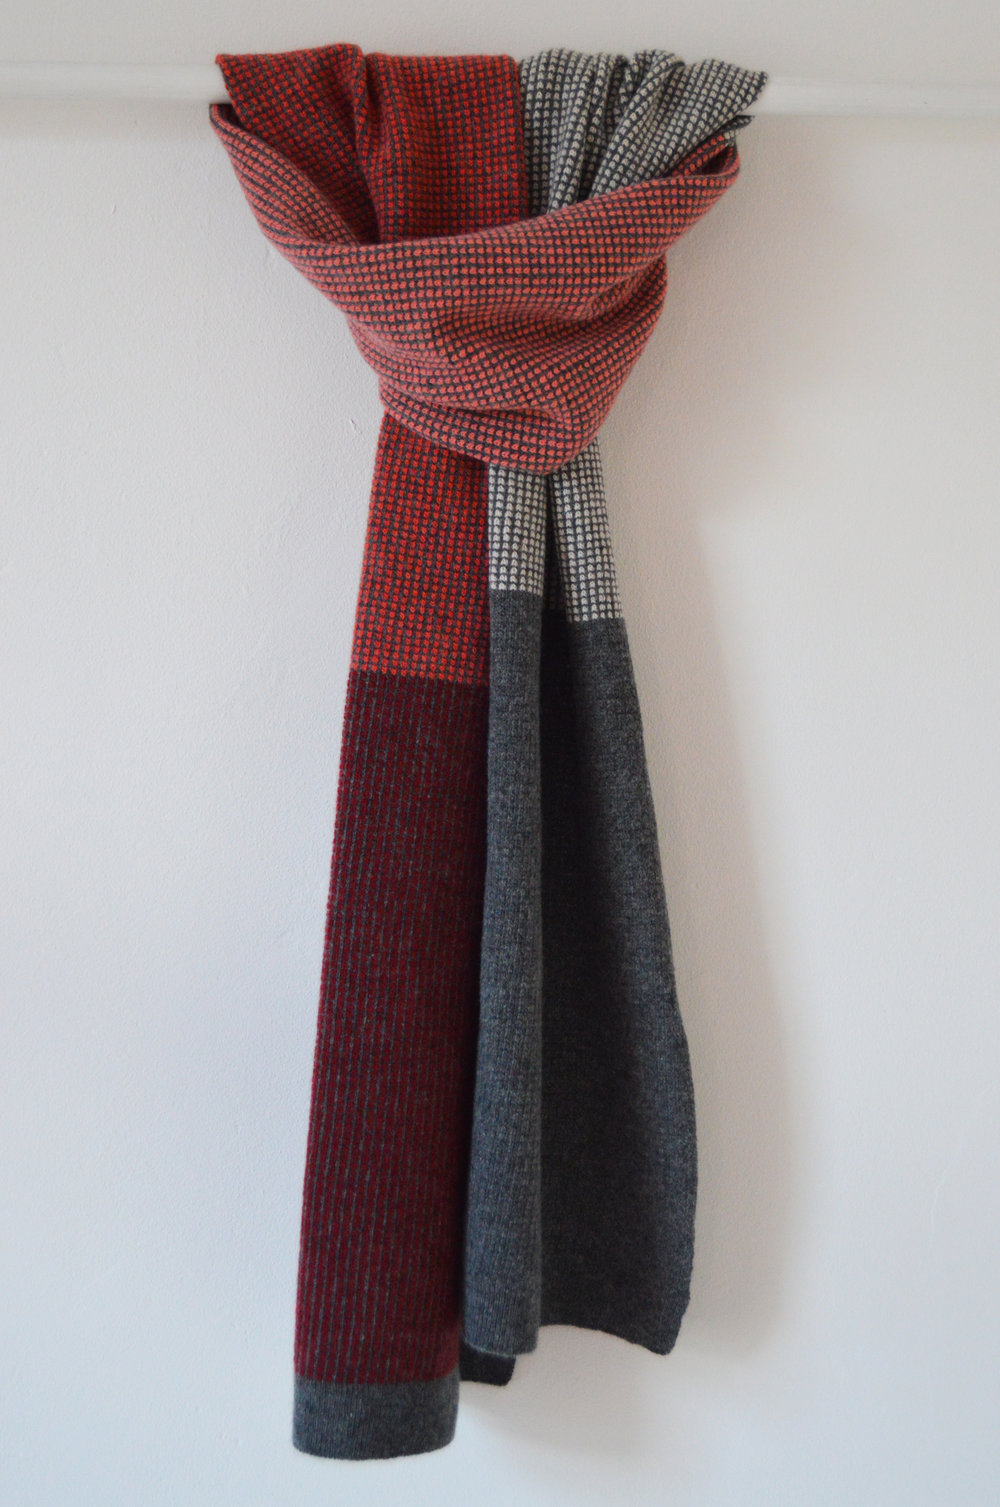 Jura Scarf, made with premium lambswool.